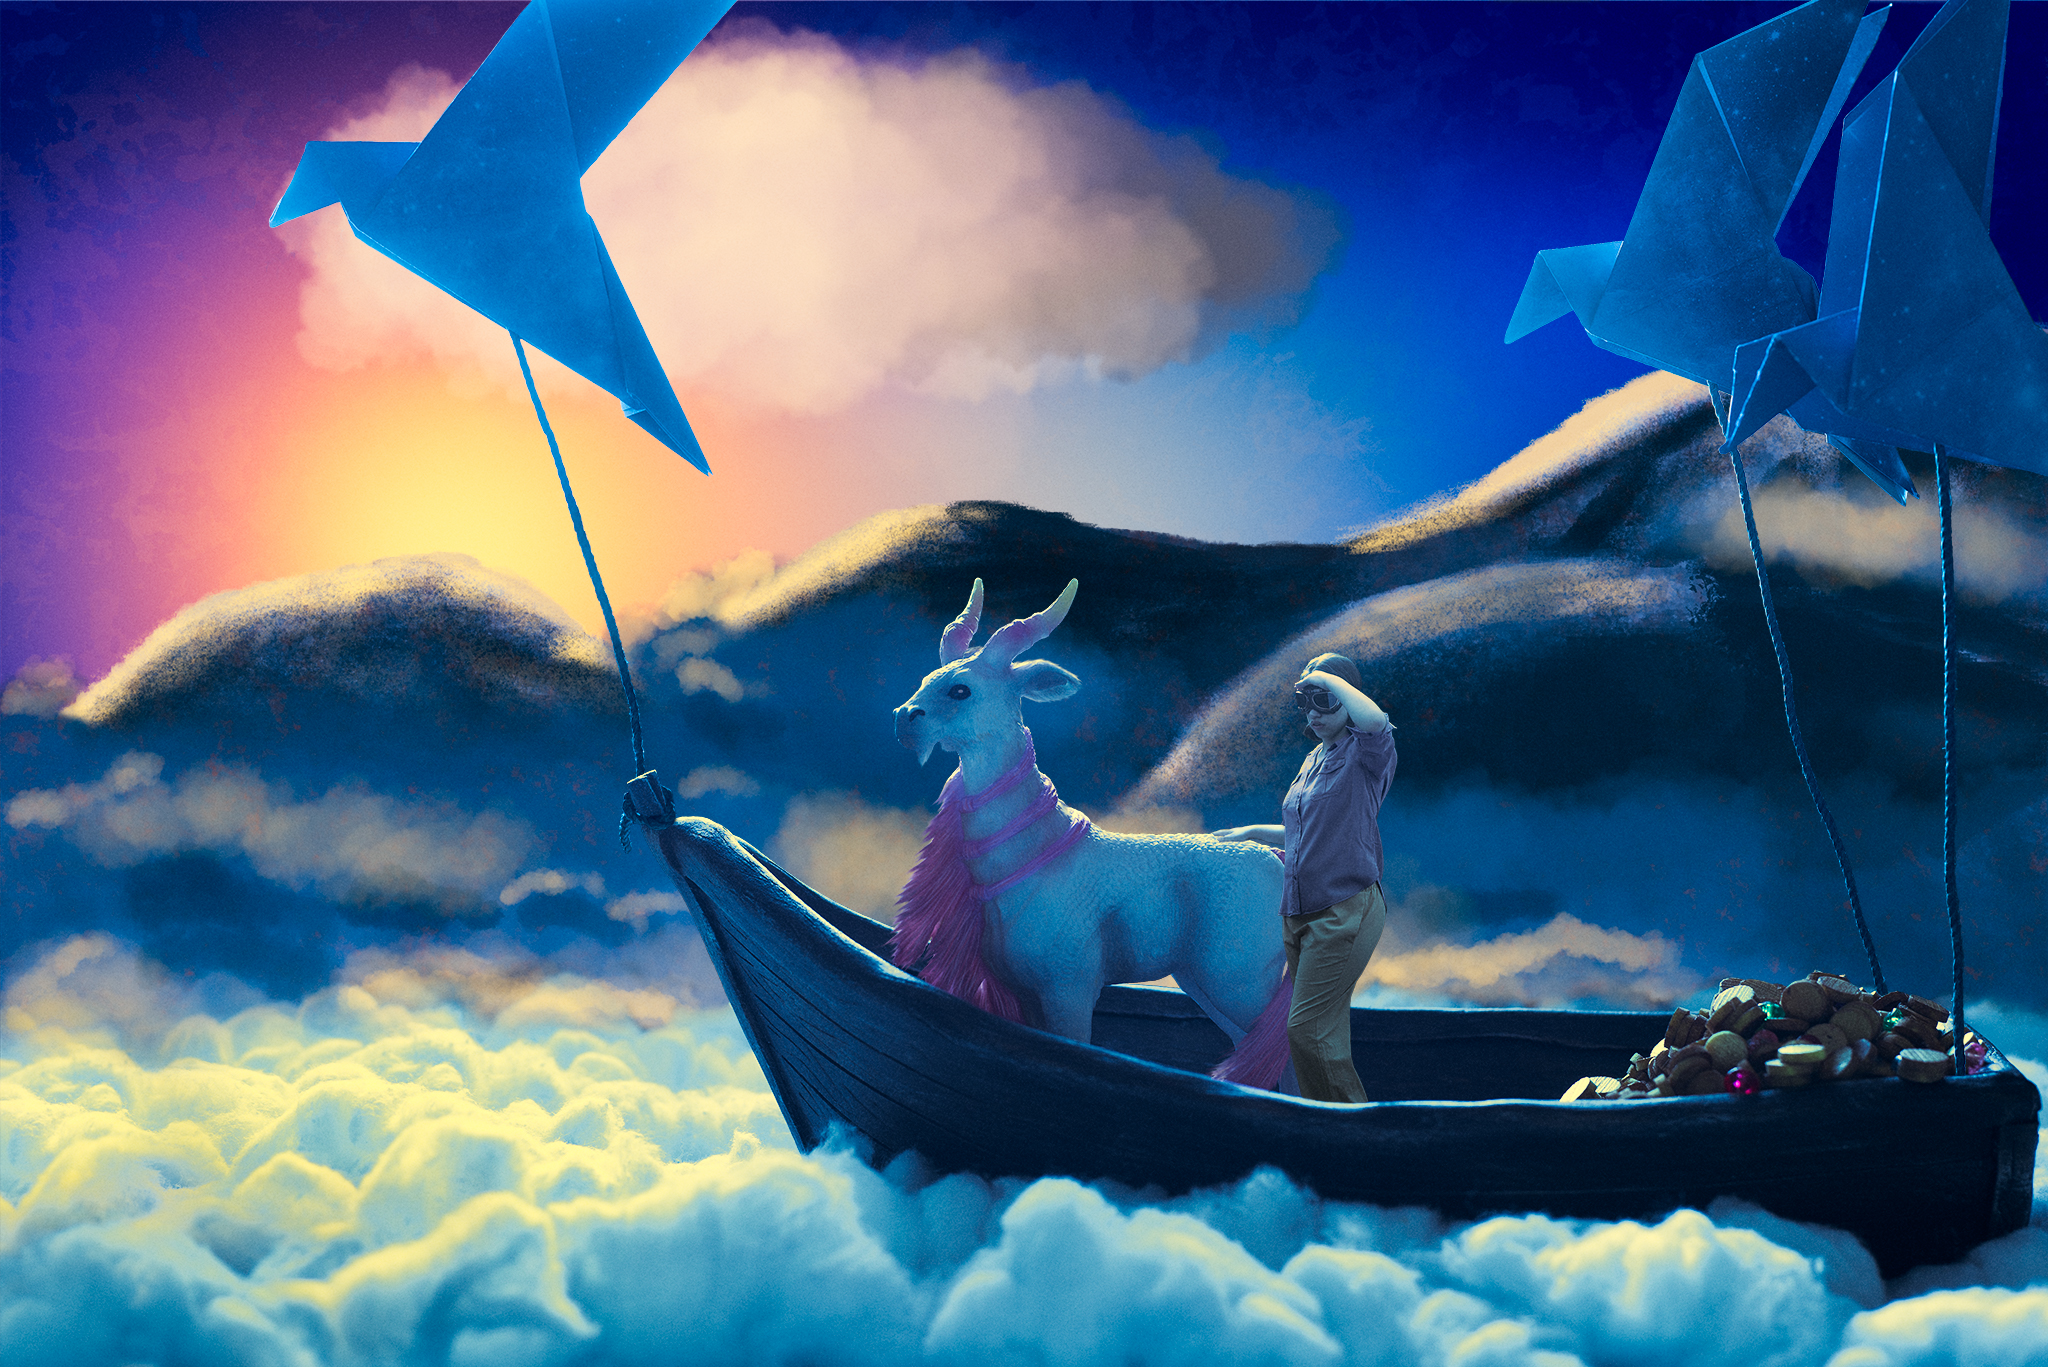 The girl and her goat sailed through the mountaintops with their loot reveling in the success of their nocturnal adventure as the sun rose and the rest of the world awoke.